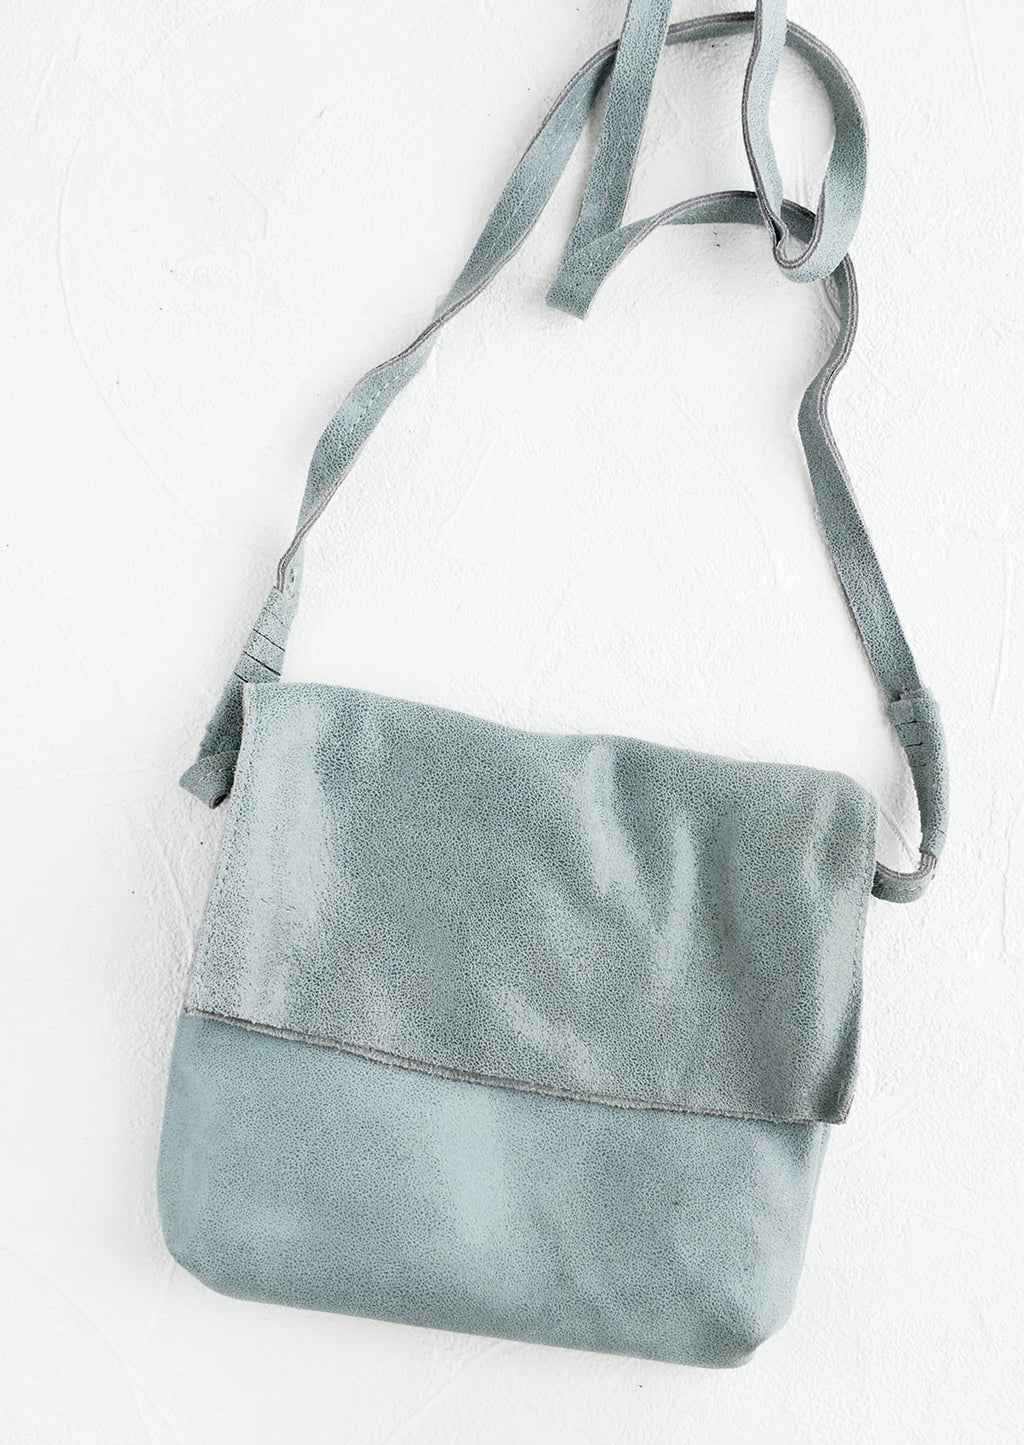 Storm Cloud: Shimmer Leather Crossbody Bag